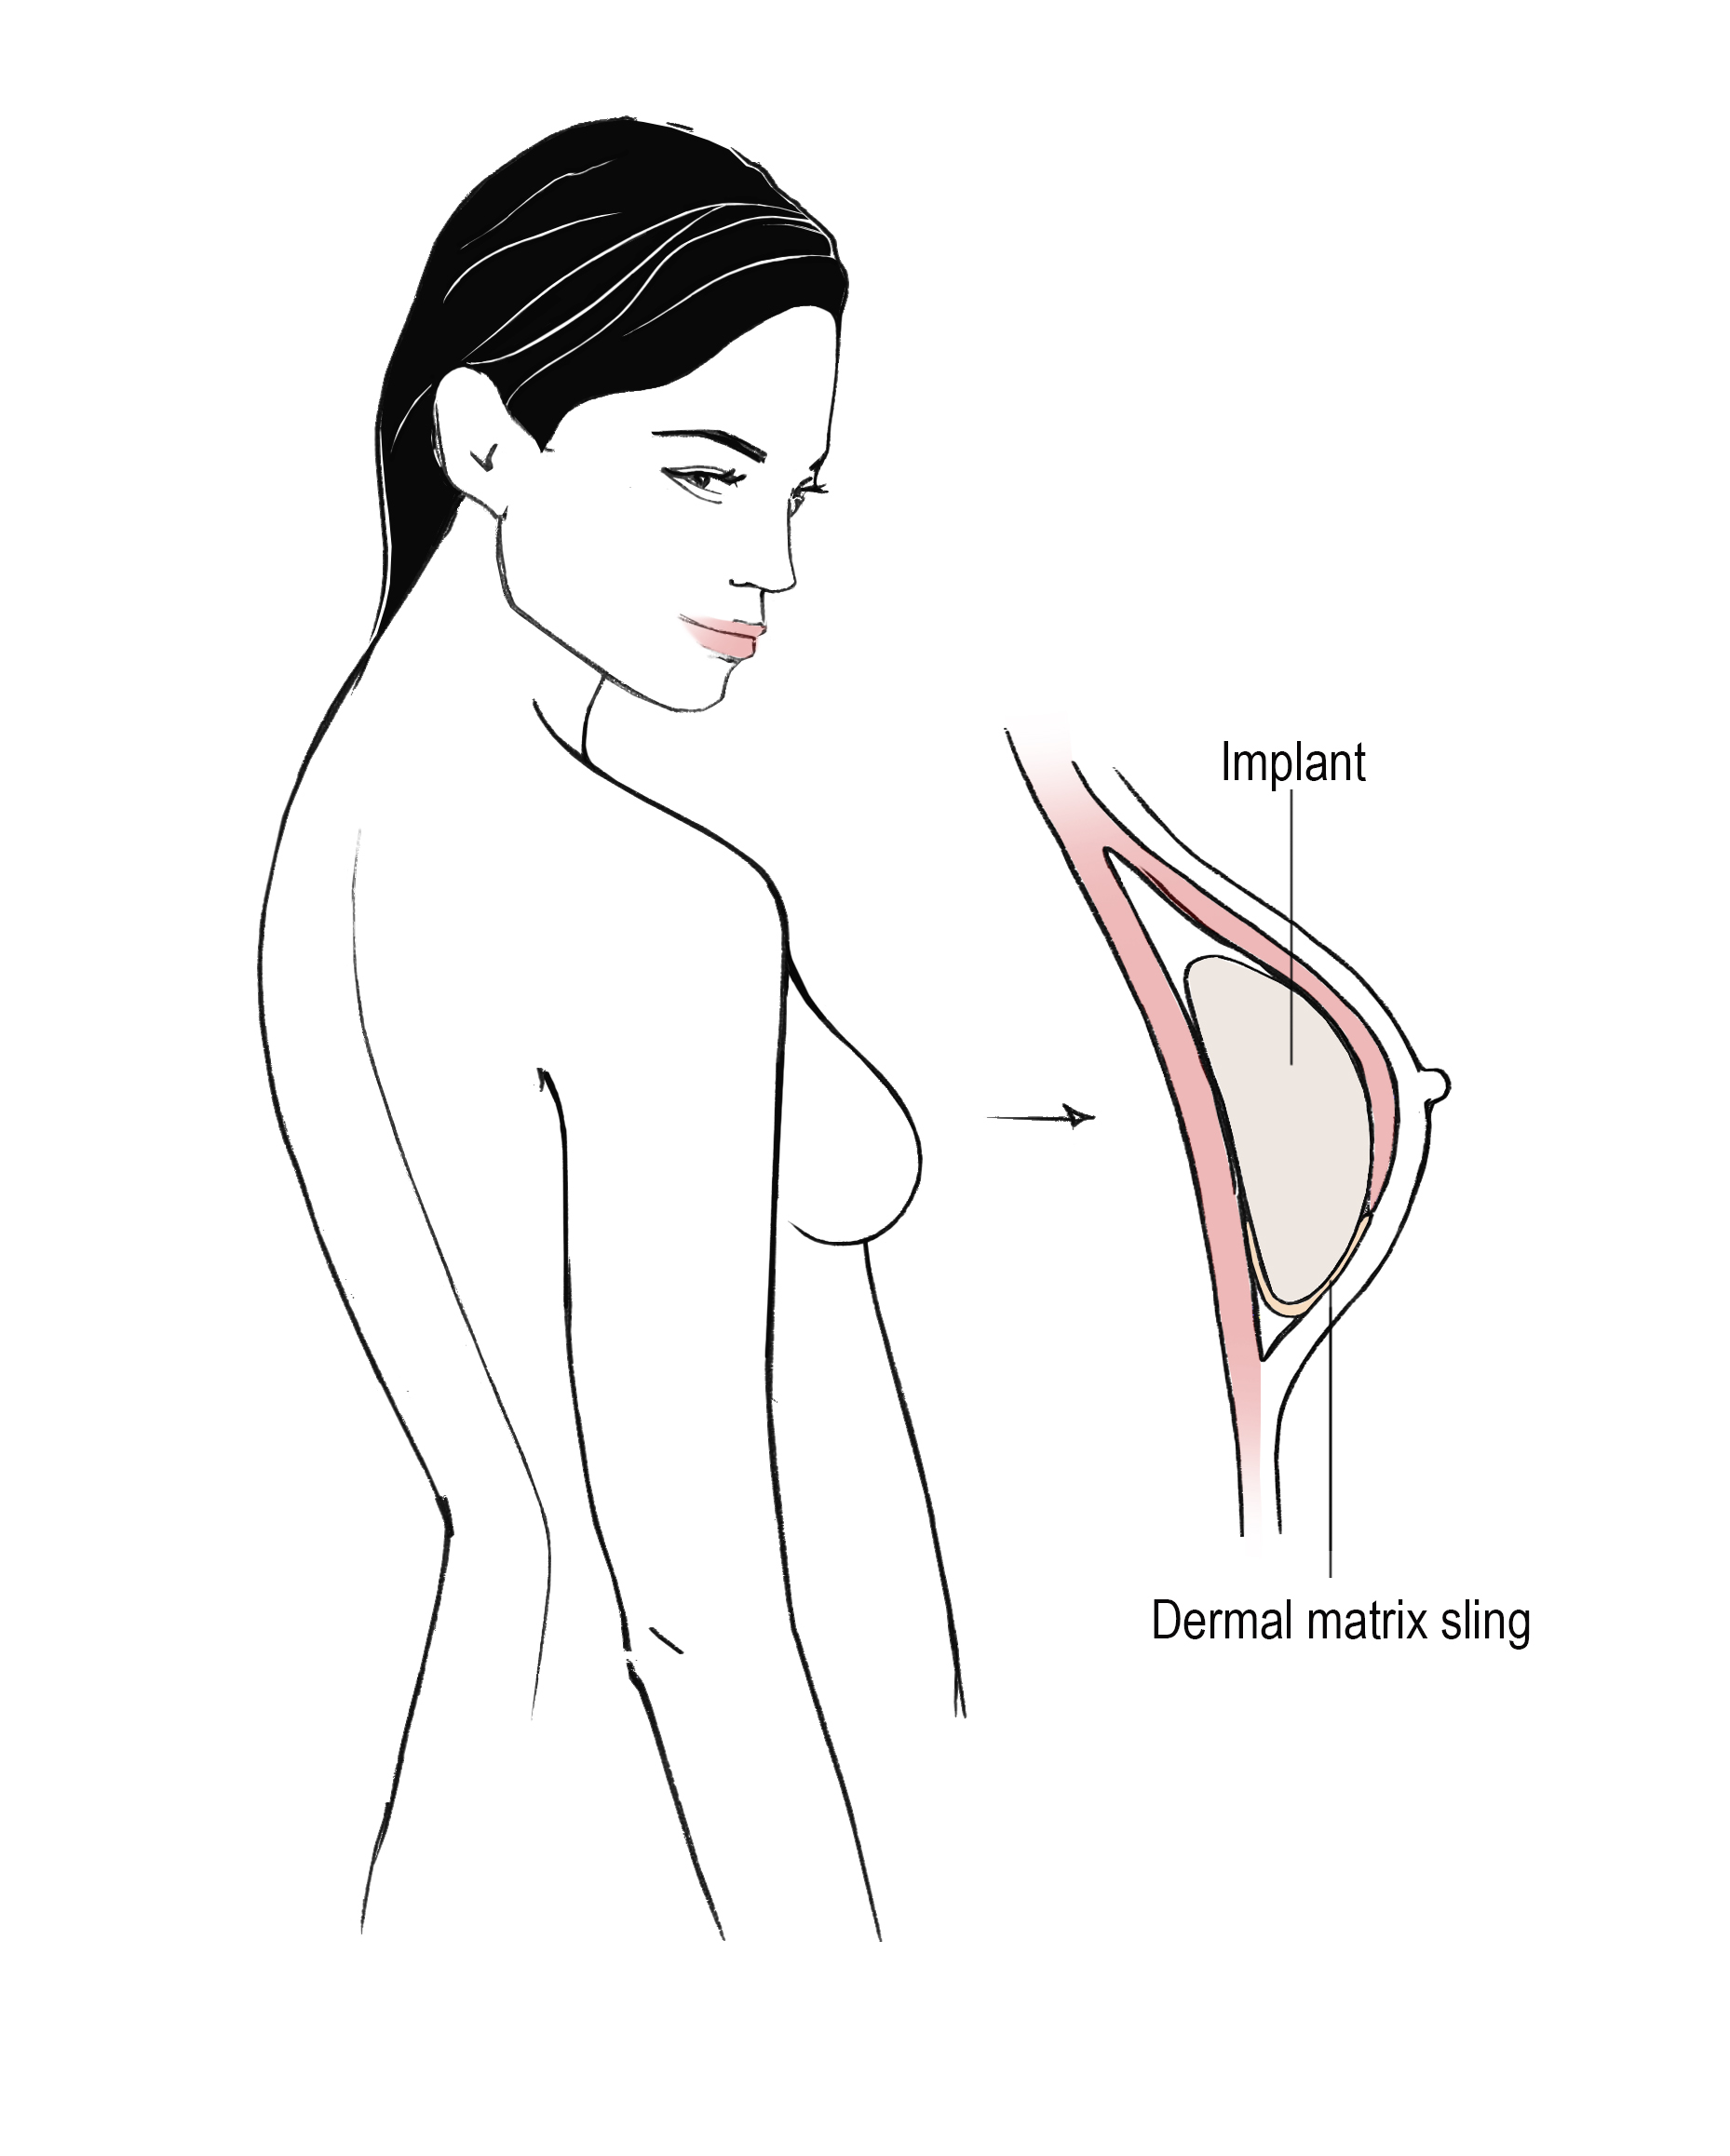 Tissue Expander to Implant Breast Reconstruction